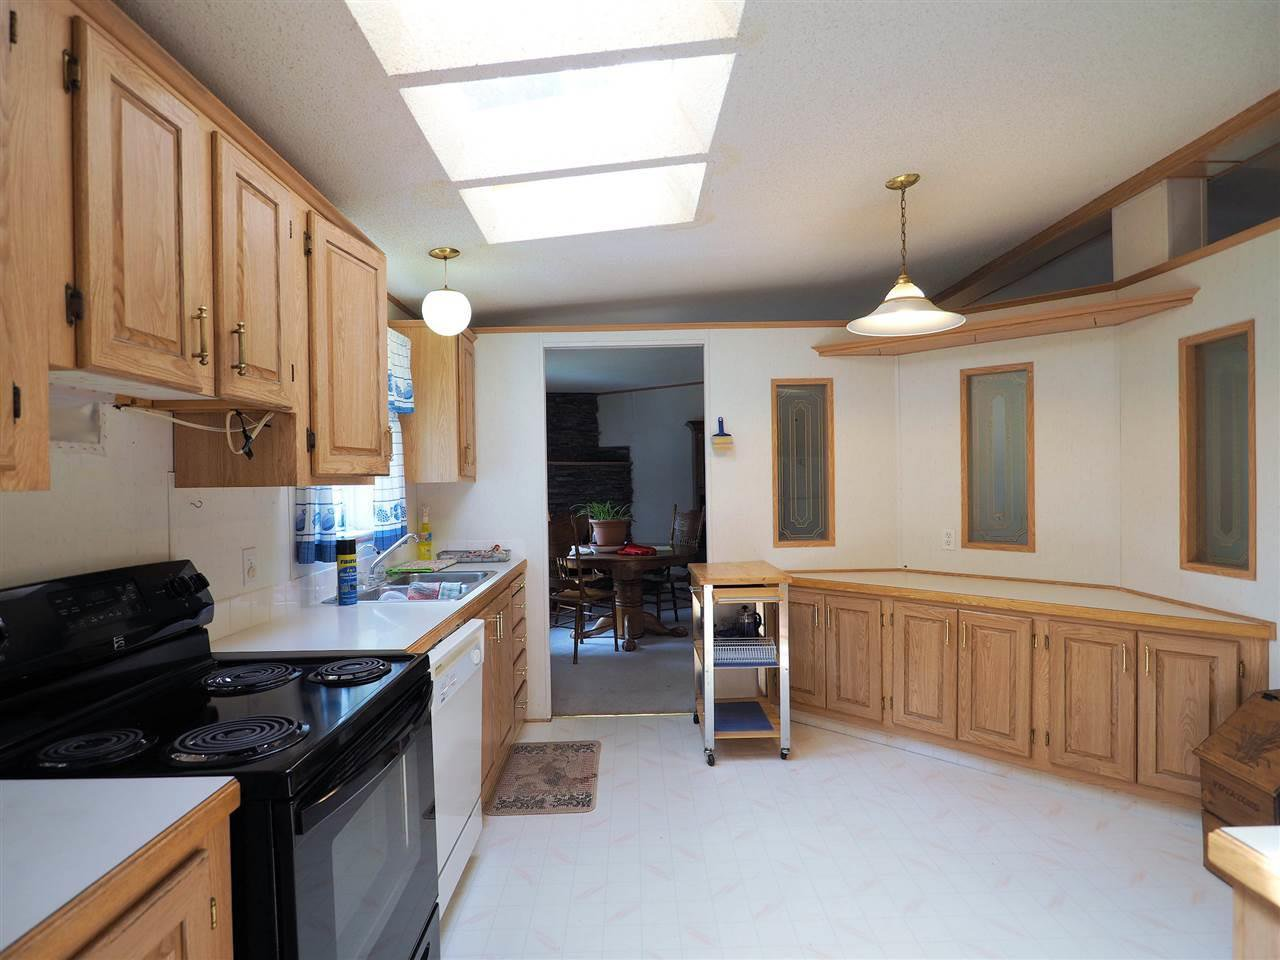 Photo 8: Photos: 4836 GLOINNZUN Drive in 108 Mile Ranch: 108 Ranch Manufactured Home for sale (100 Mile House (Zone 10))  : MLS®# R2435093